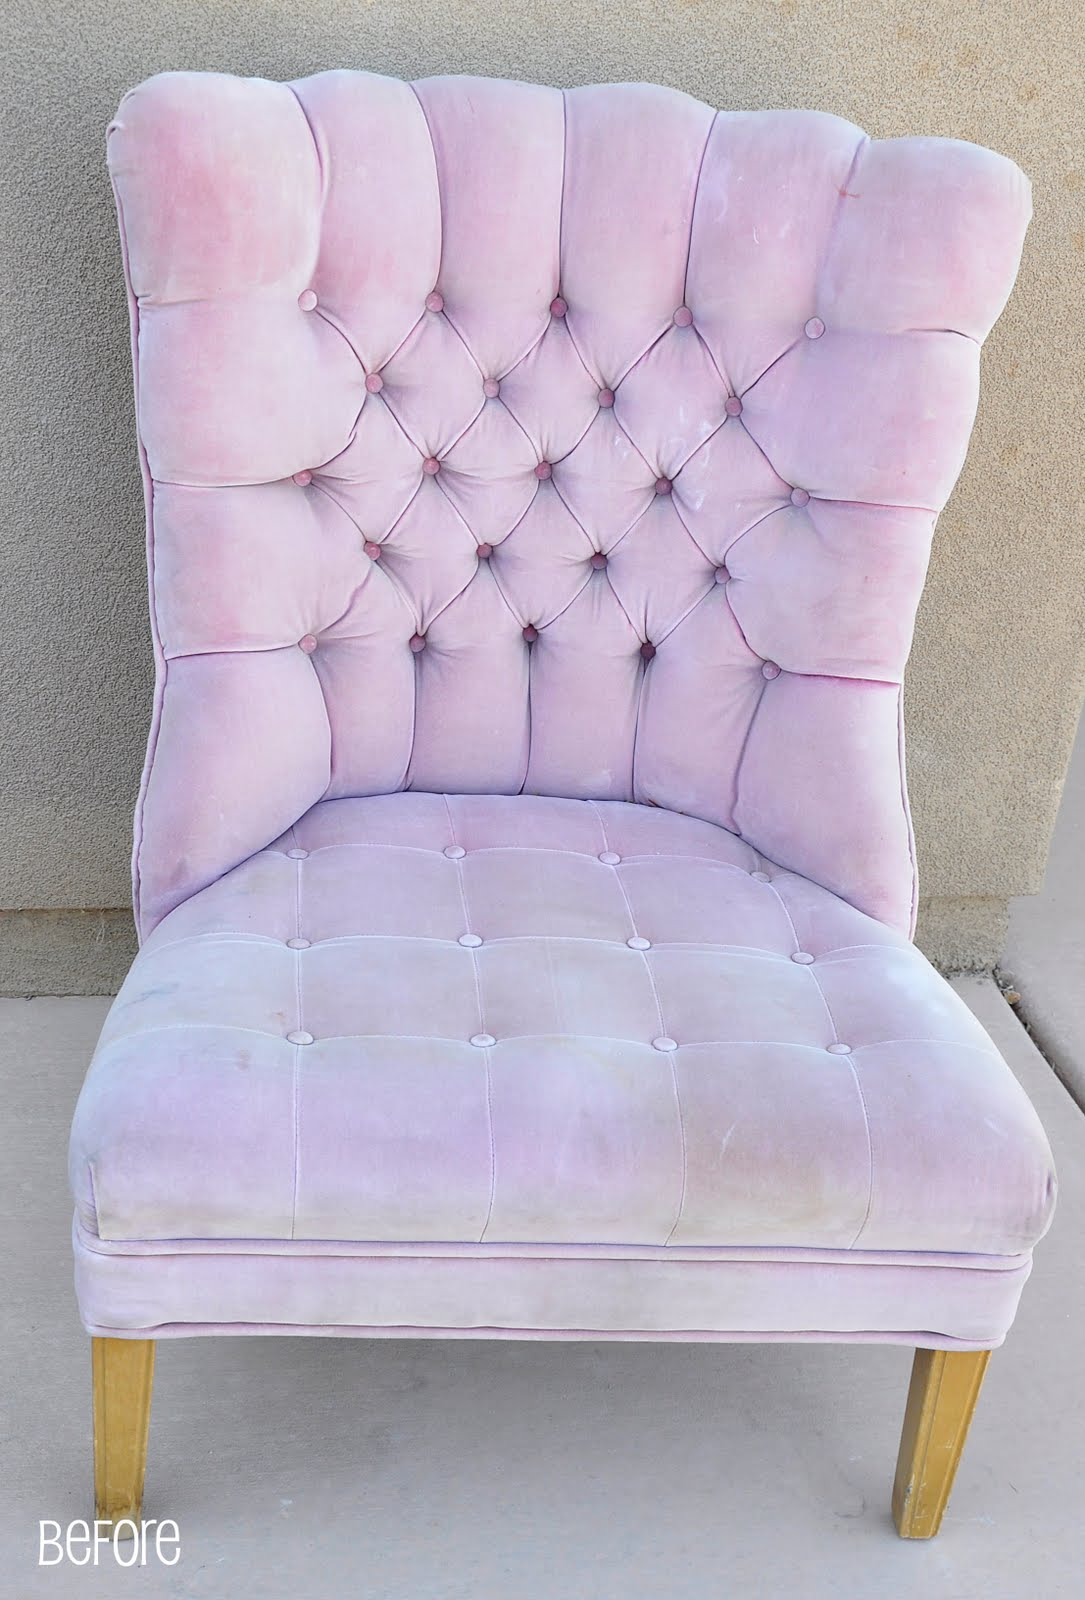 Reupholstering Of Pink Chair Complete